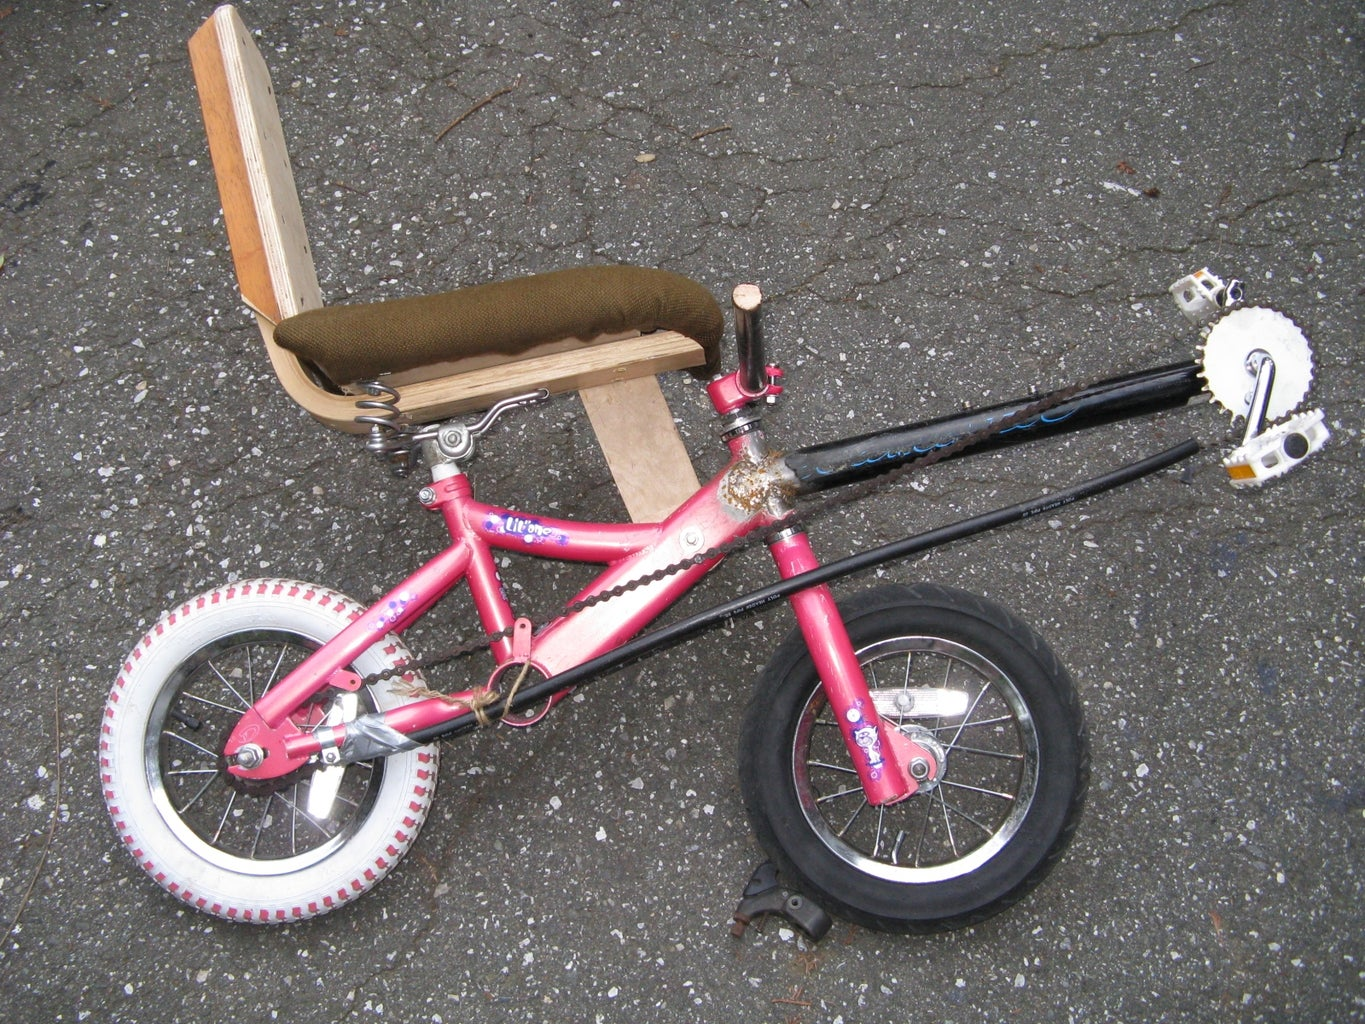 Add Seat Brace and Adjustable Seat-back